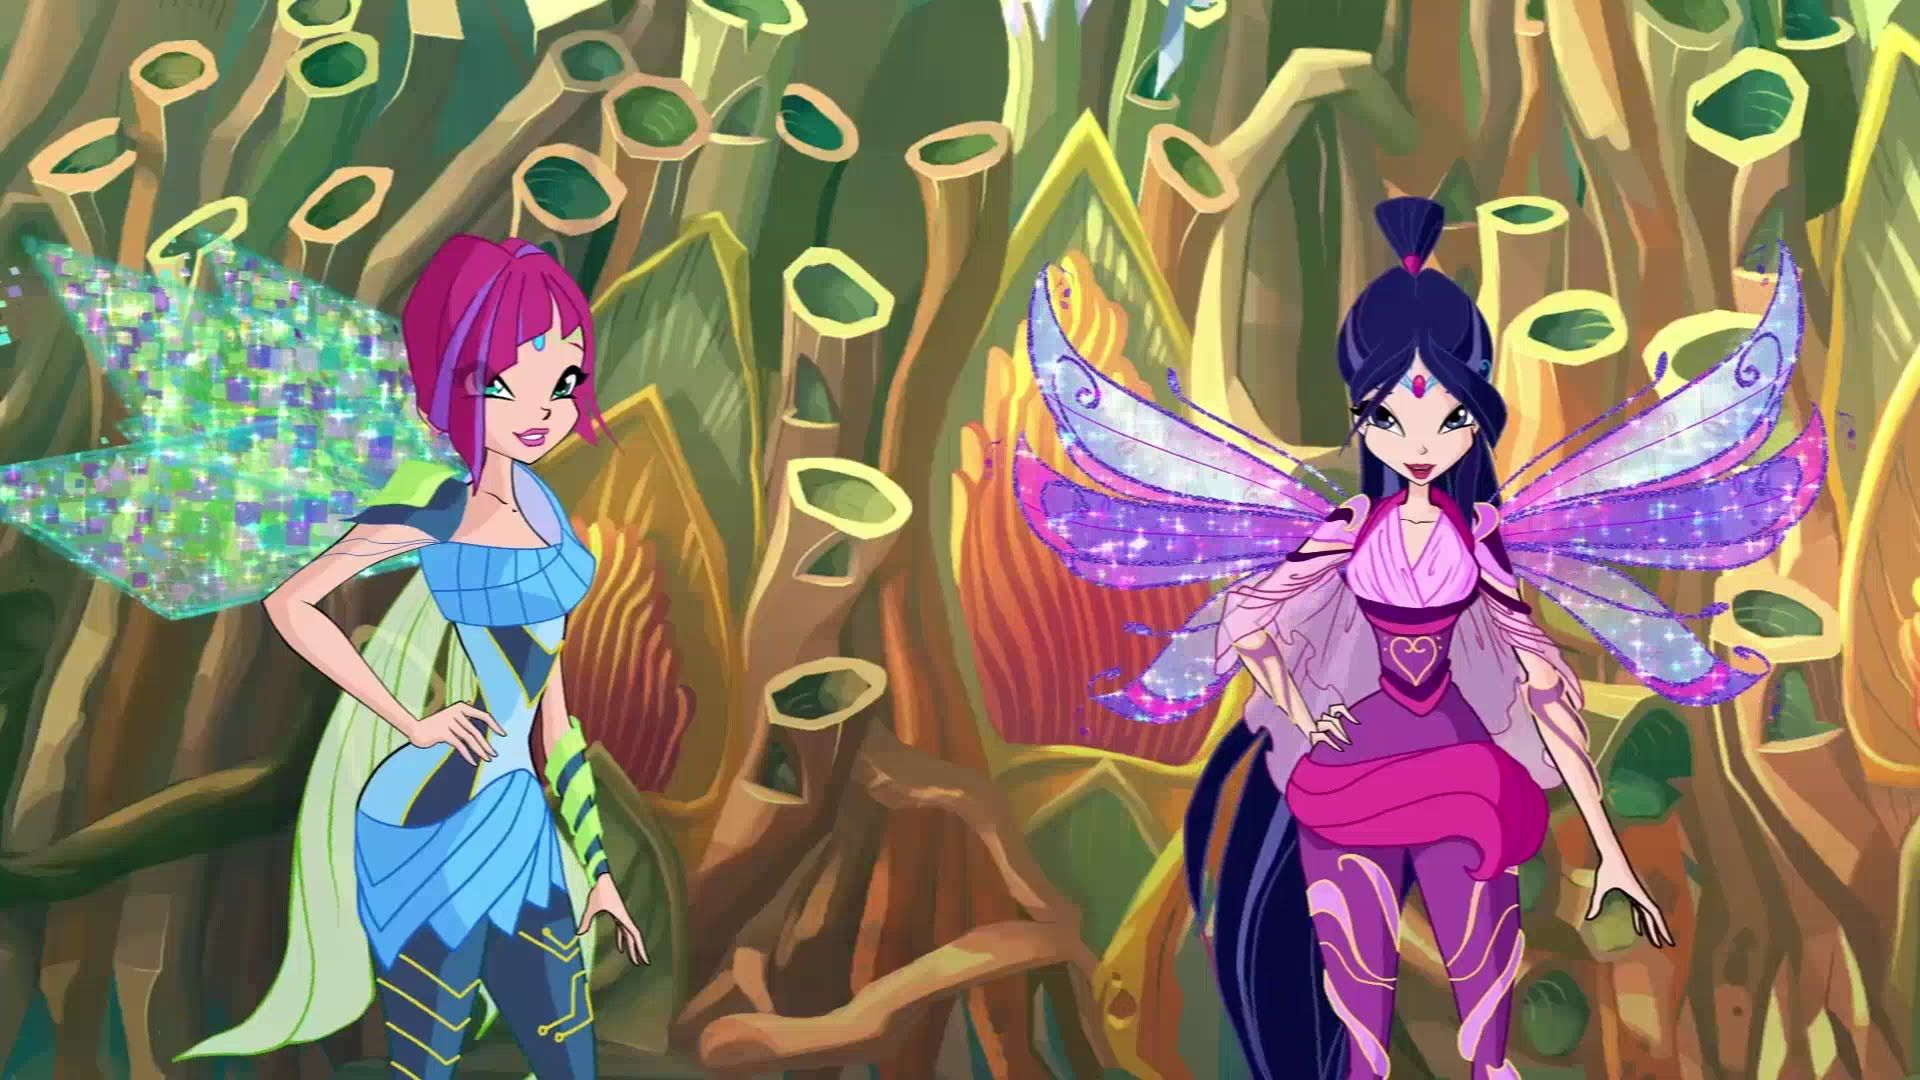 Winx Club 6x05 The Golden Auditorium: Musa and Tecna Bloomix